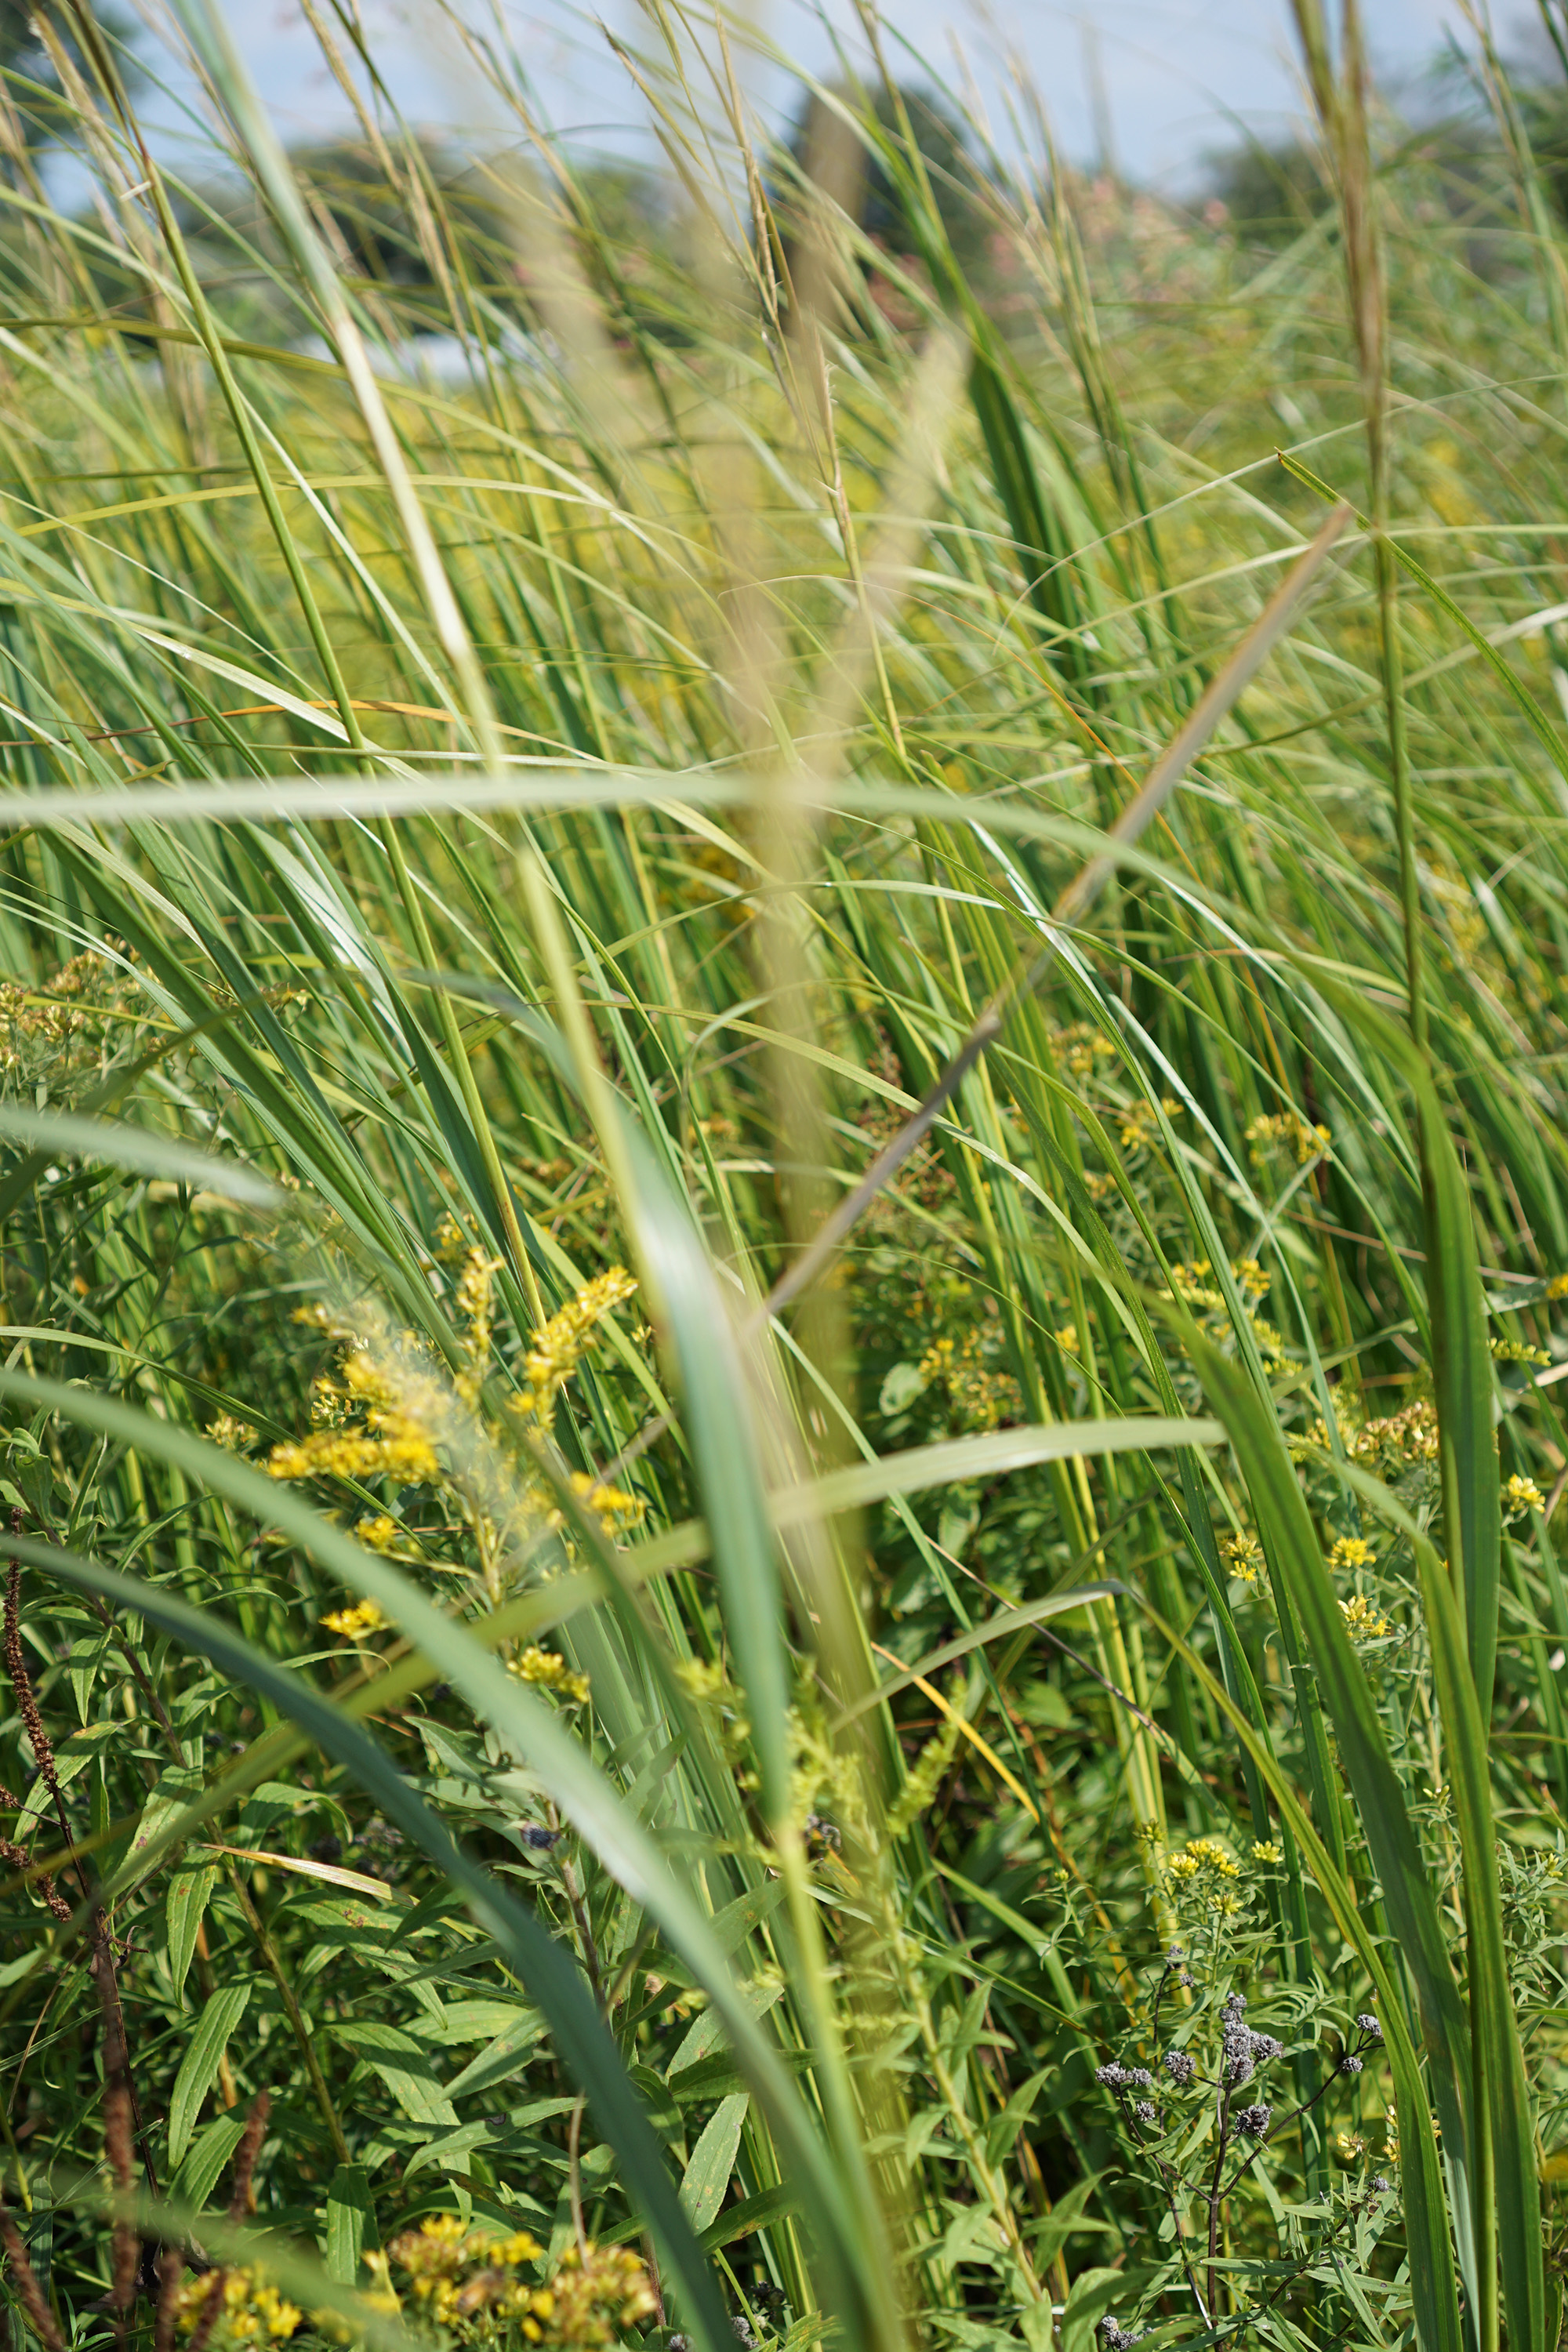 Grasses in the tallgrass prairie, Chicago Botanic Garden / Darker than Green